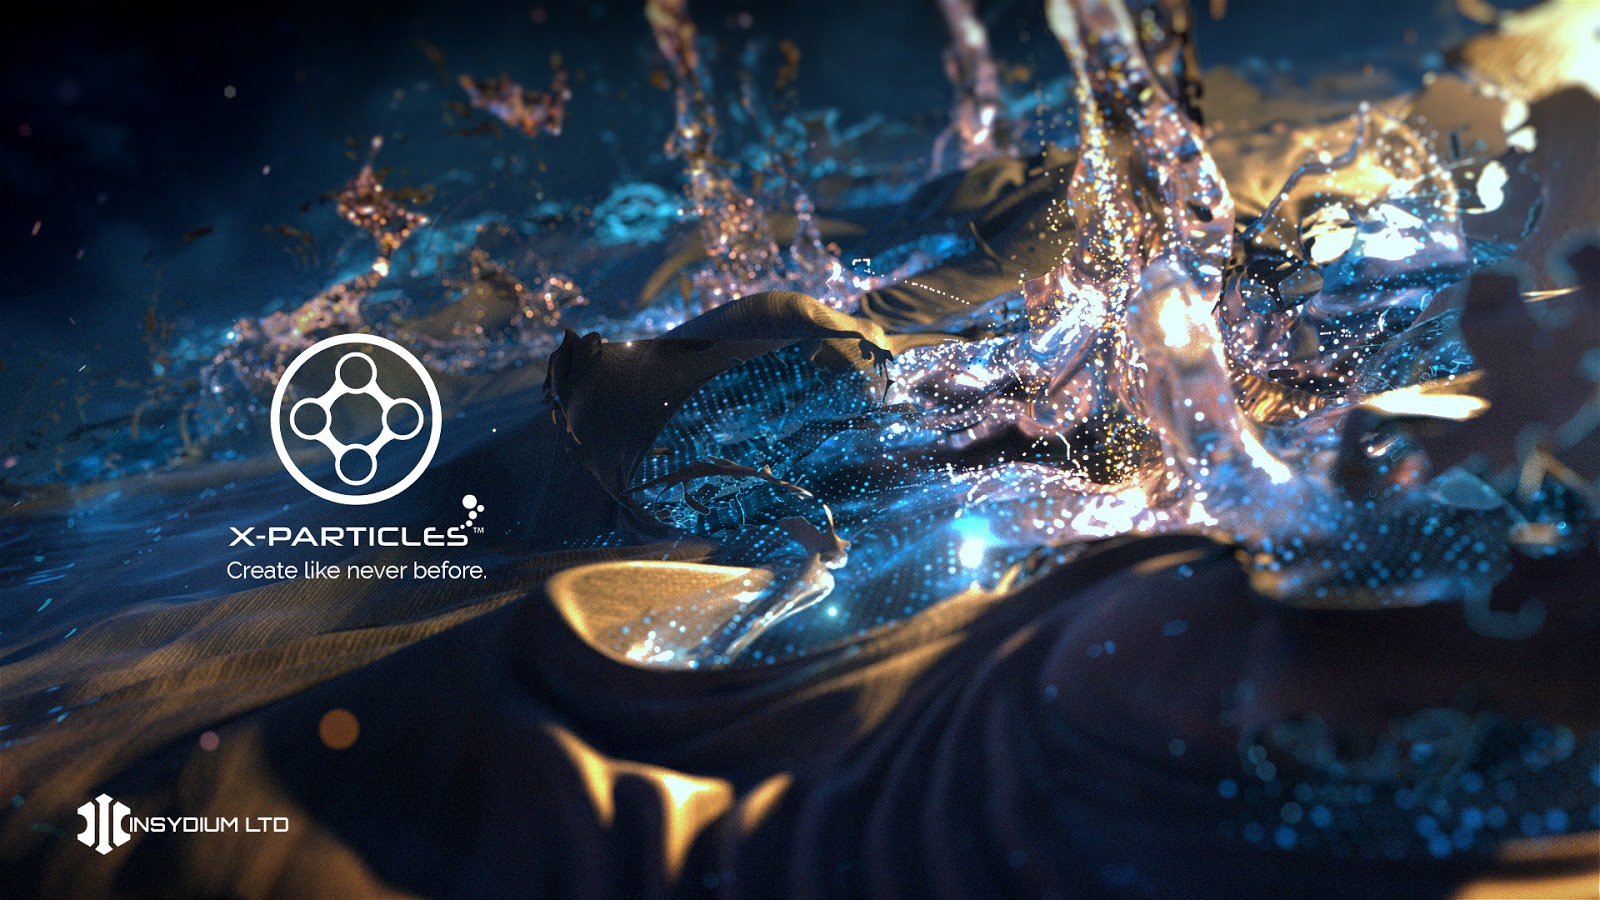 Download X-Particles 4 Cracked for Cinema 4D | Cracked Software